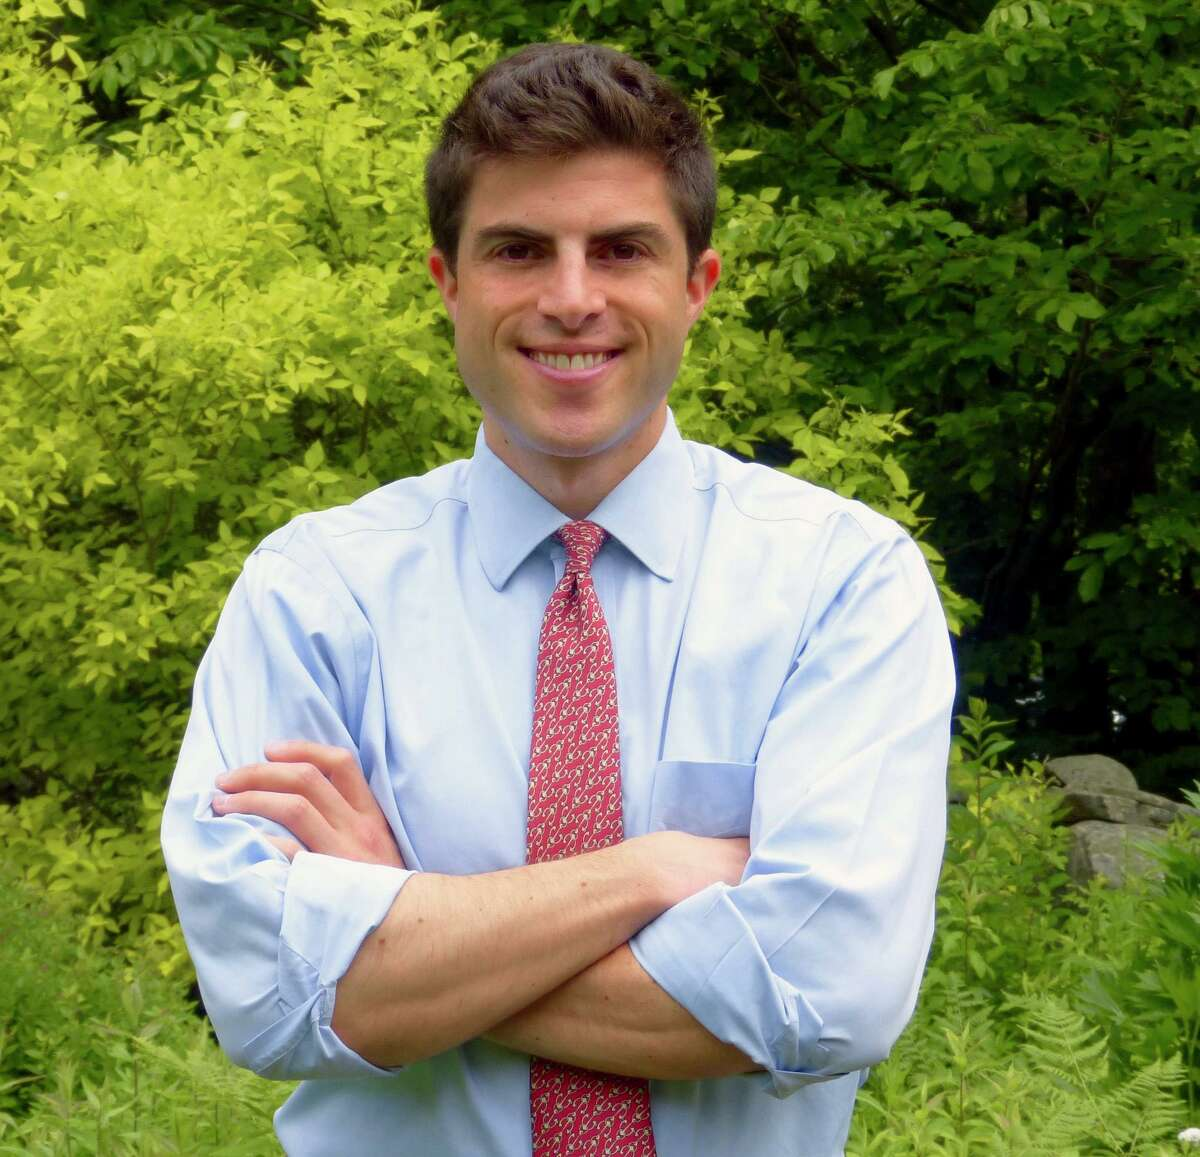 Matthew Blumenthal, Democratic candidate for the House of Representatives 147th District seat, Stamford.